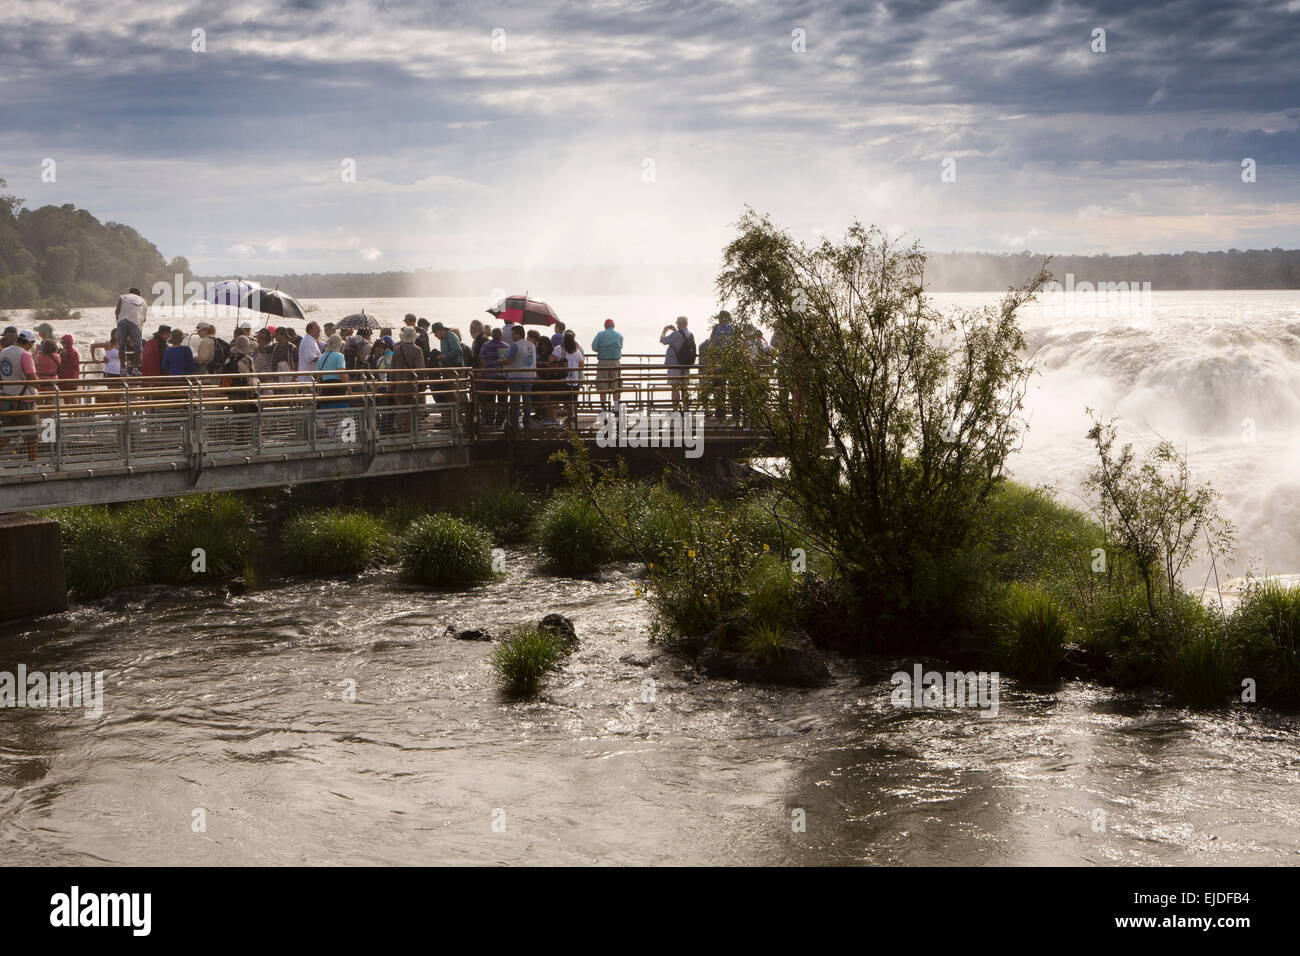 Argentina, Iguazu Falls National Park,tourists viewing Garganta el Diablo waterfall, from elevated walkway - Stock Image